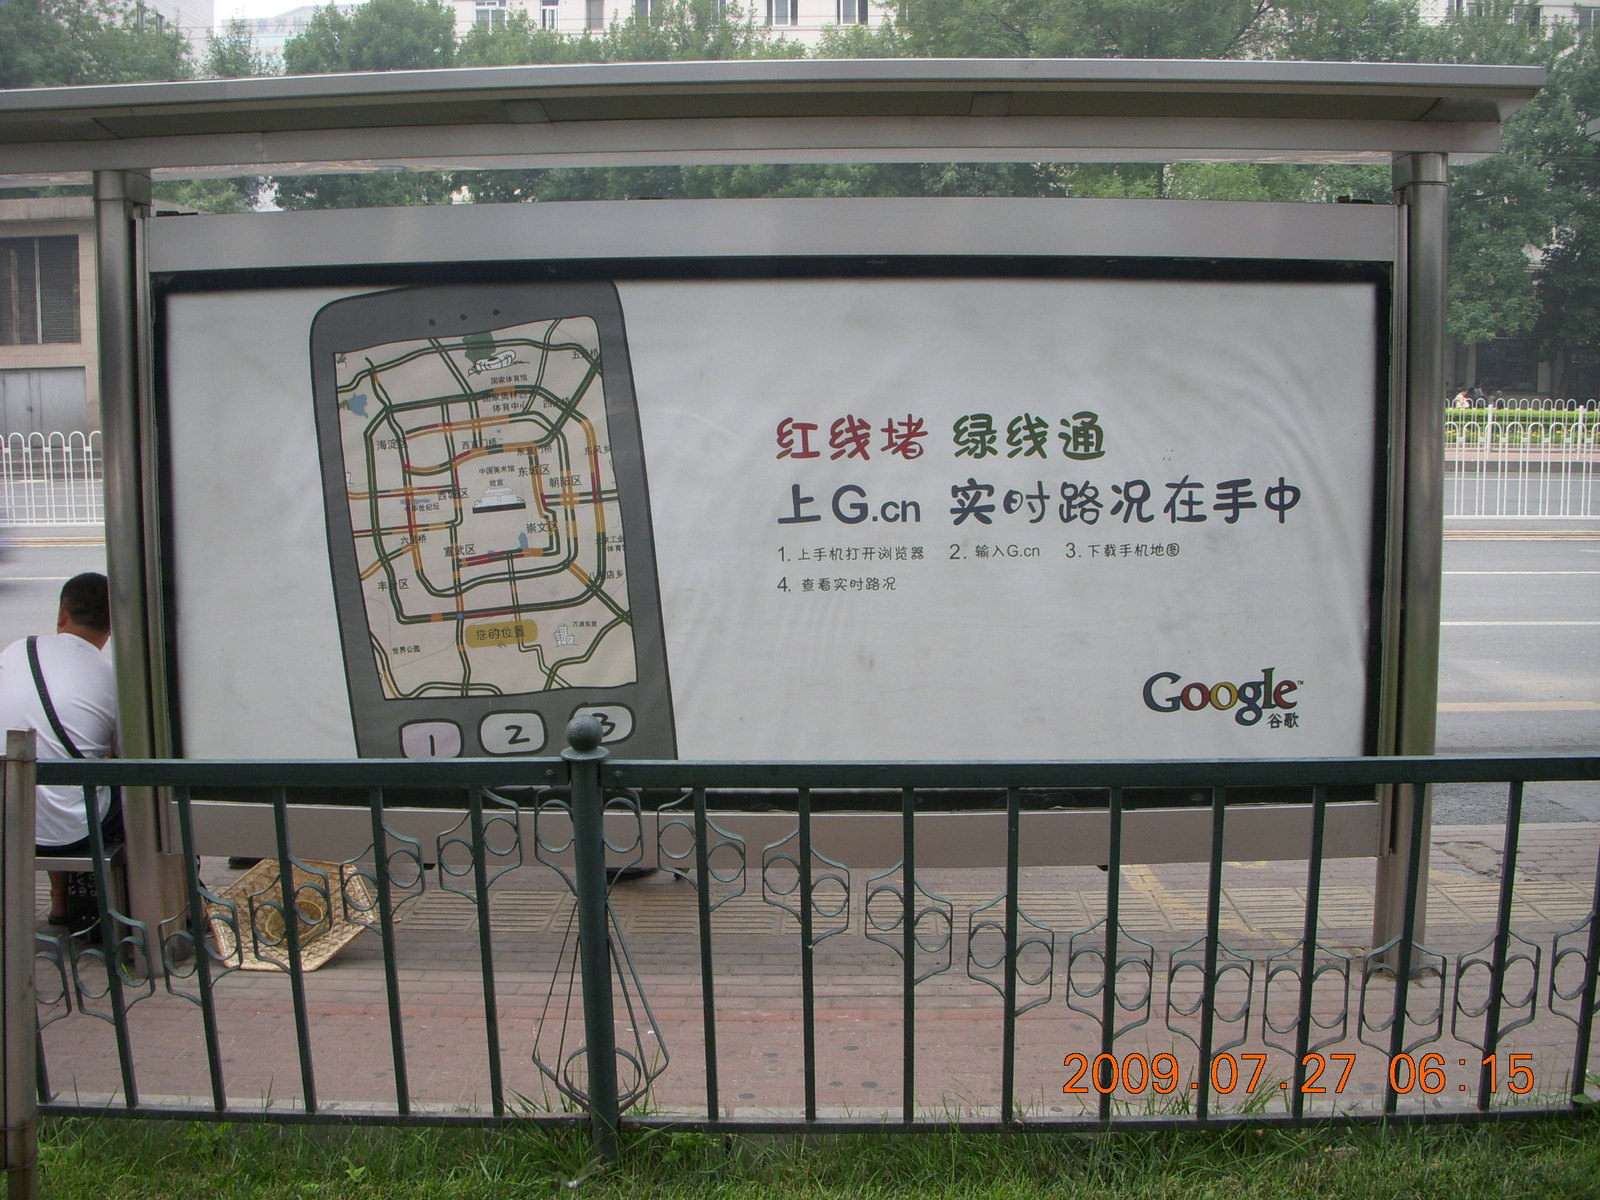 China eclipse - Beijing morning run - advertisement sign for Google